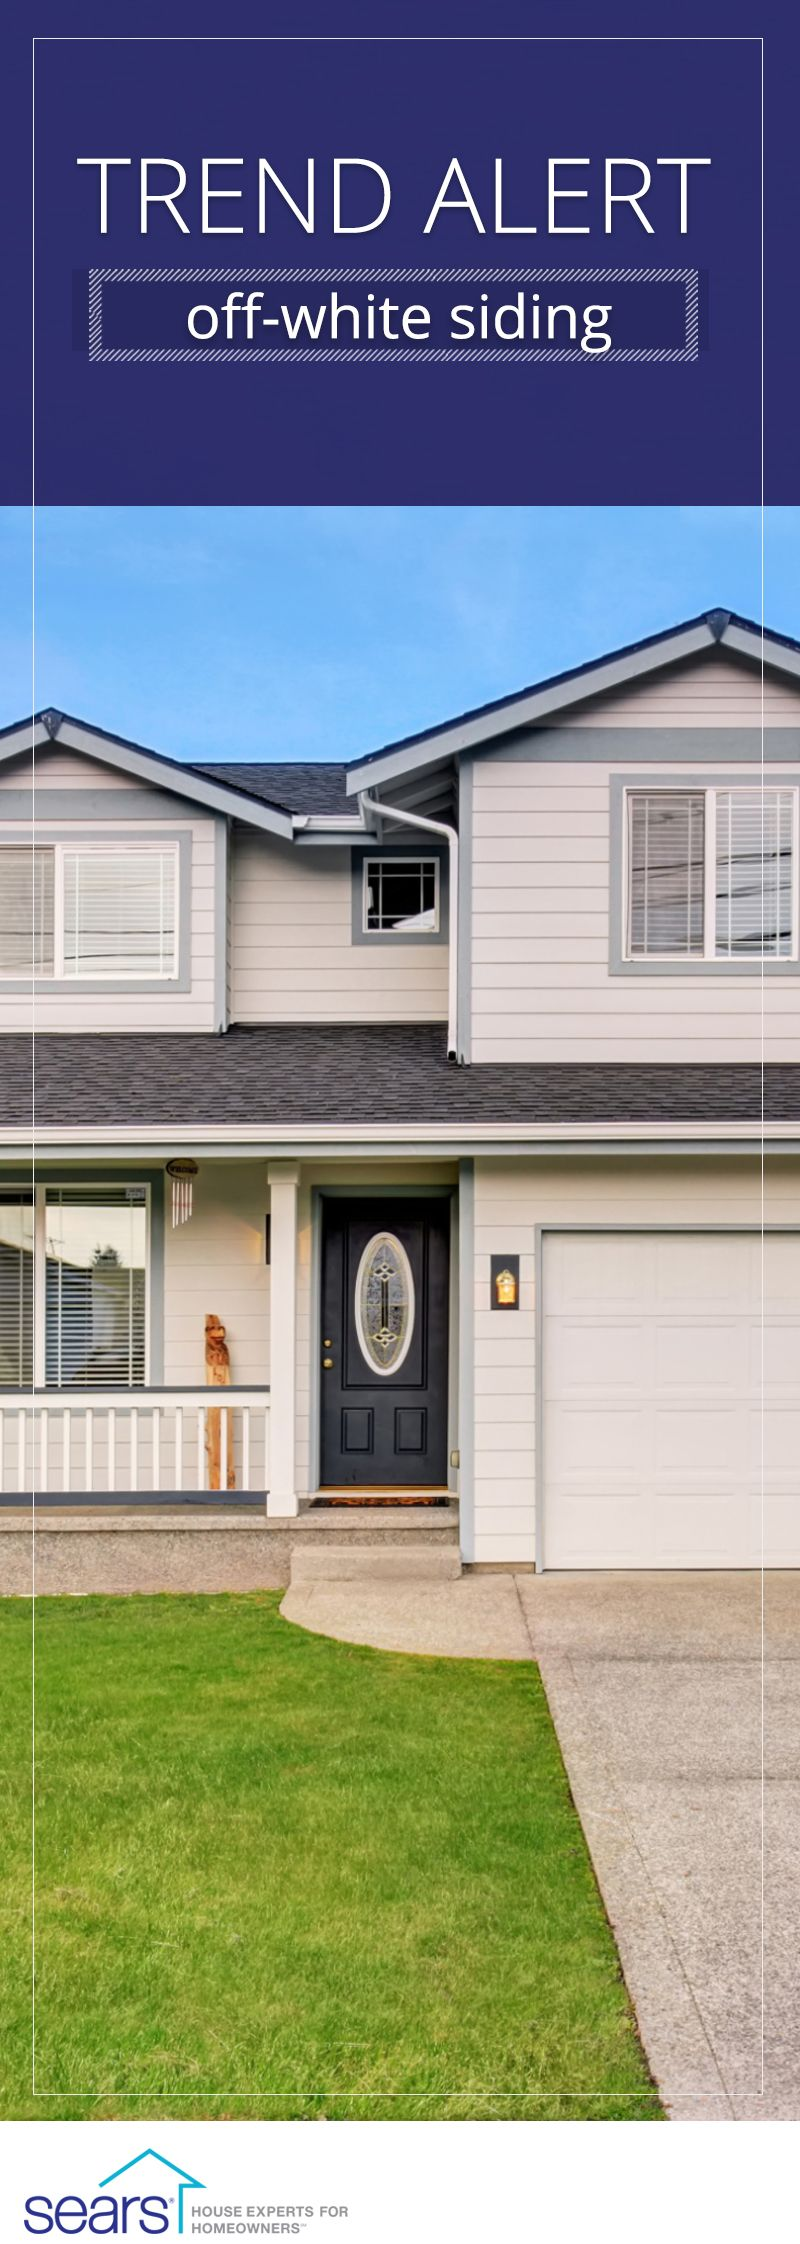 How To Choose New Vinyl Siding 6 Questions To Ask Give Your Home A Face Lift And Recoup Up To 77 Of Your Cost With New V Vinyl Siding Build Dream Home Siding